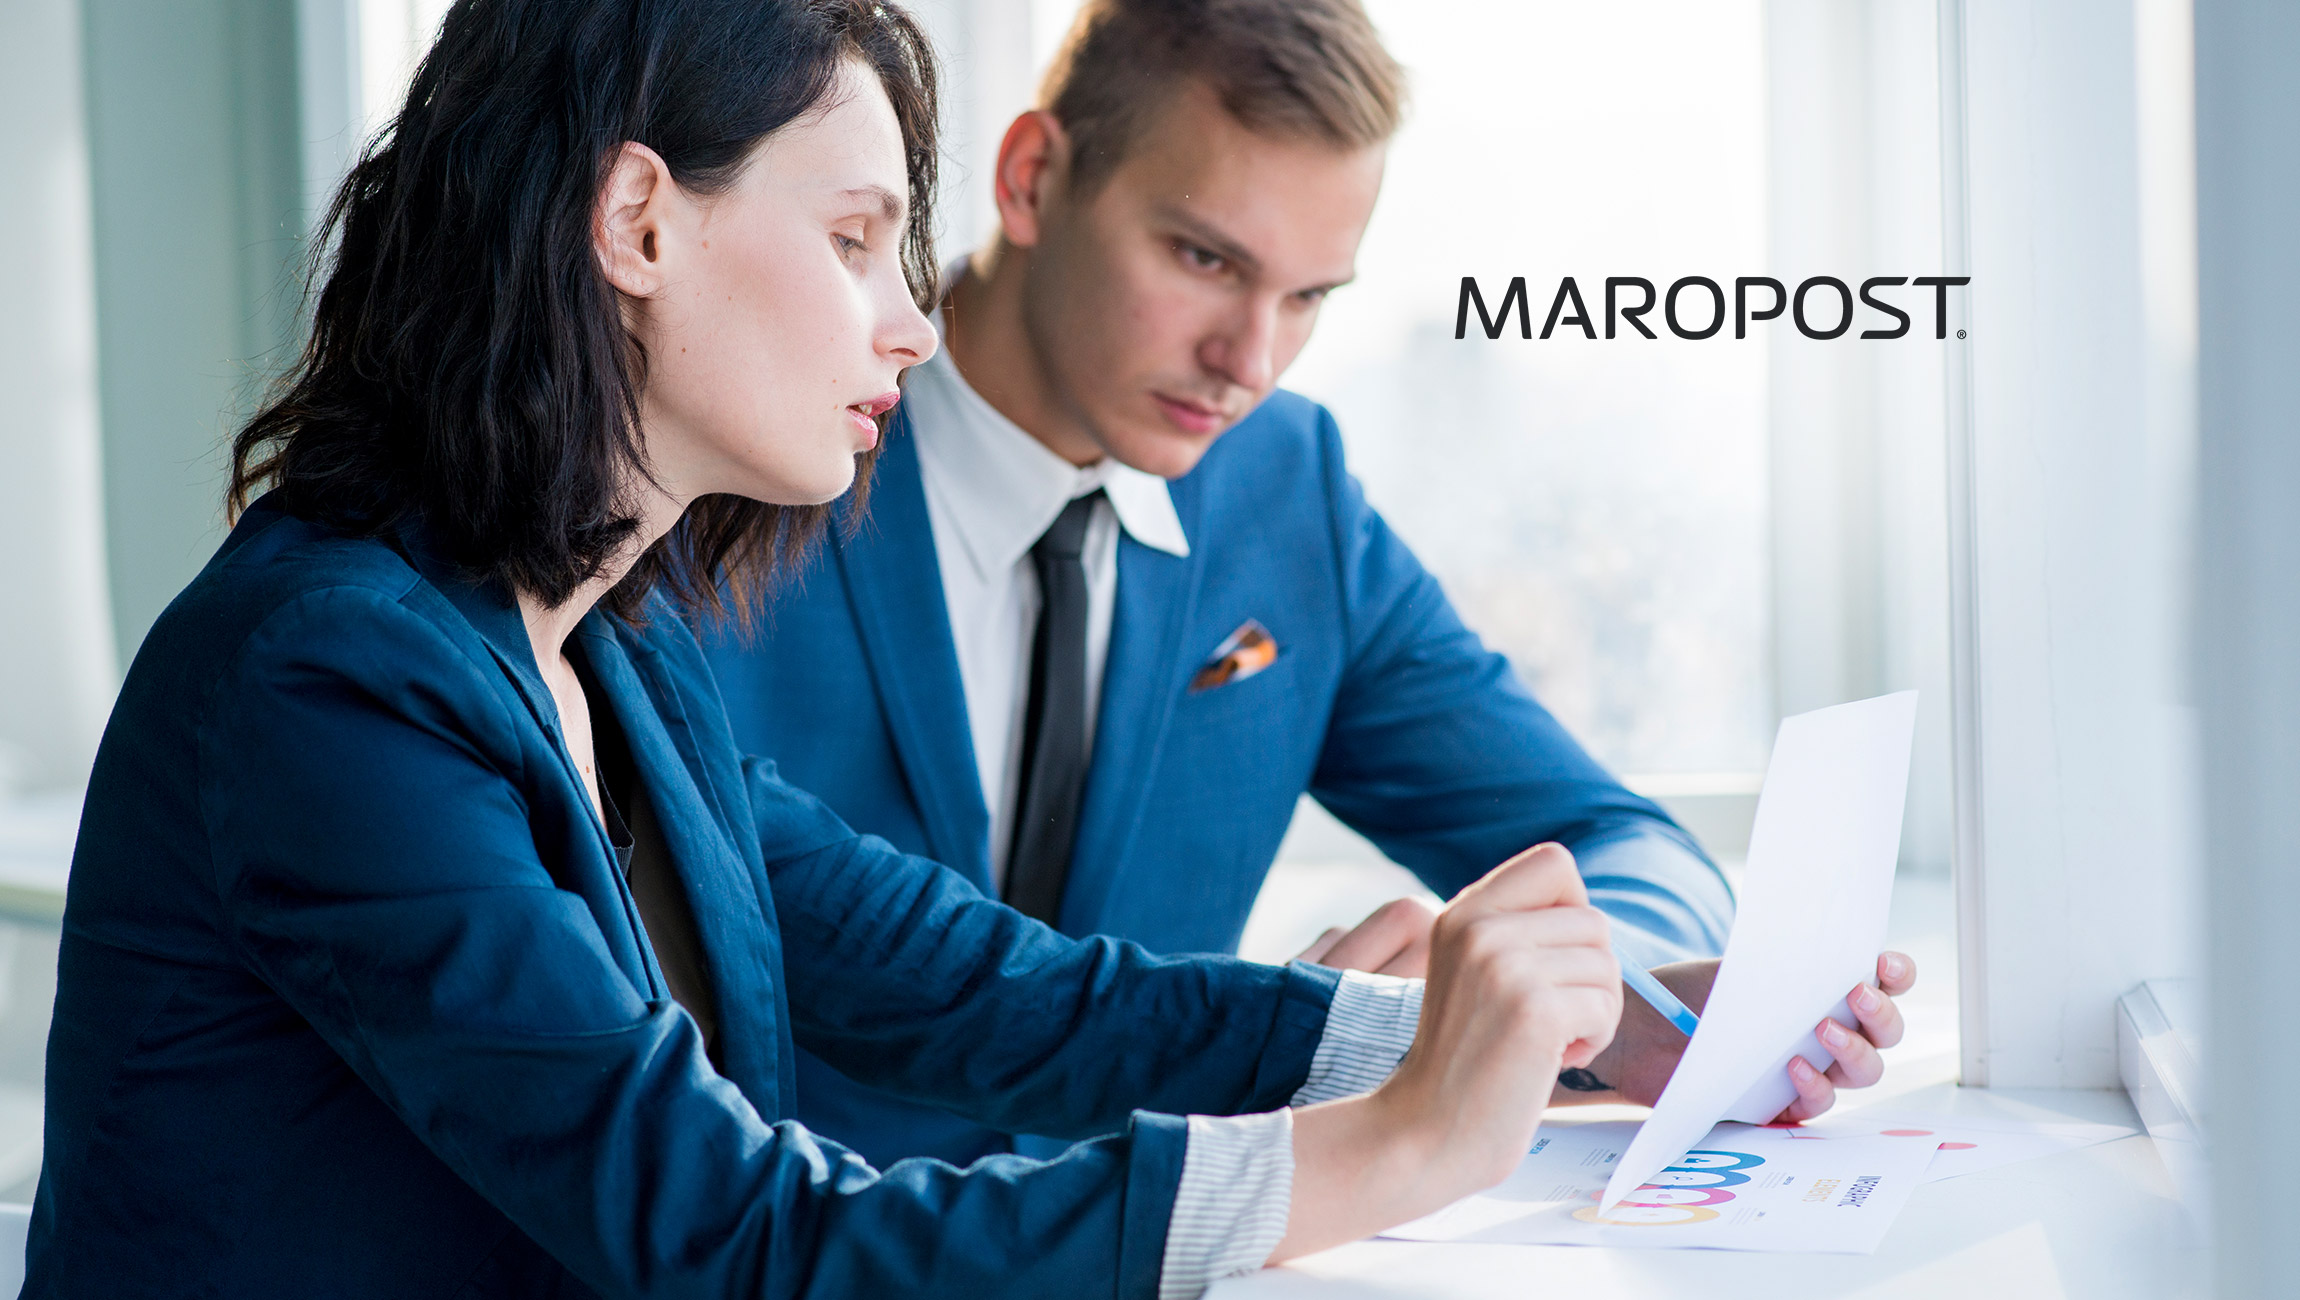 Maropost Named Fastest-Growing Company in North America